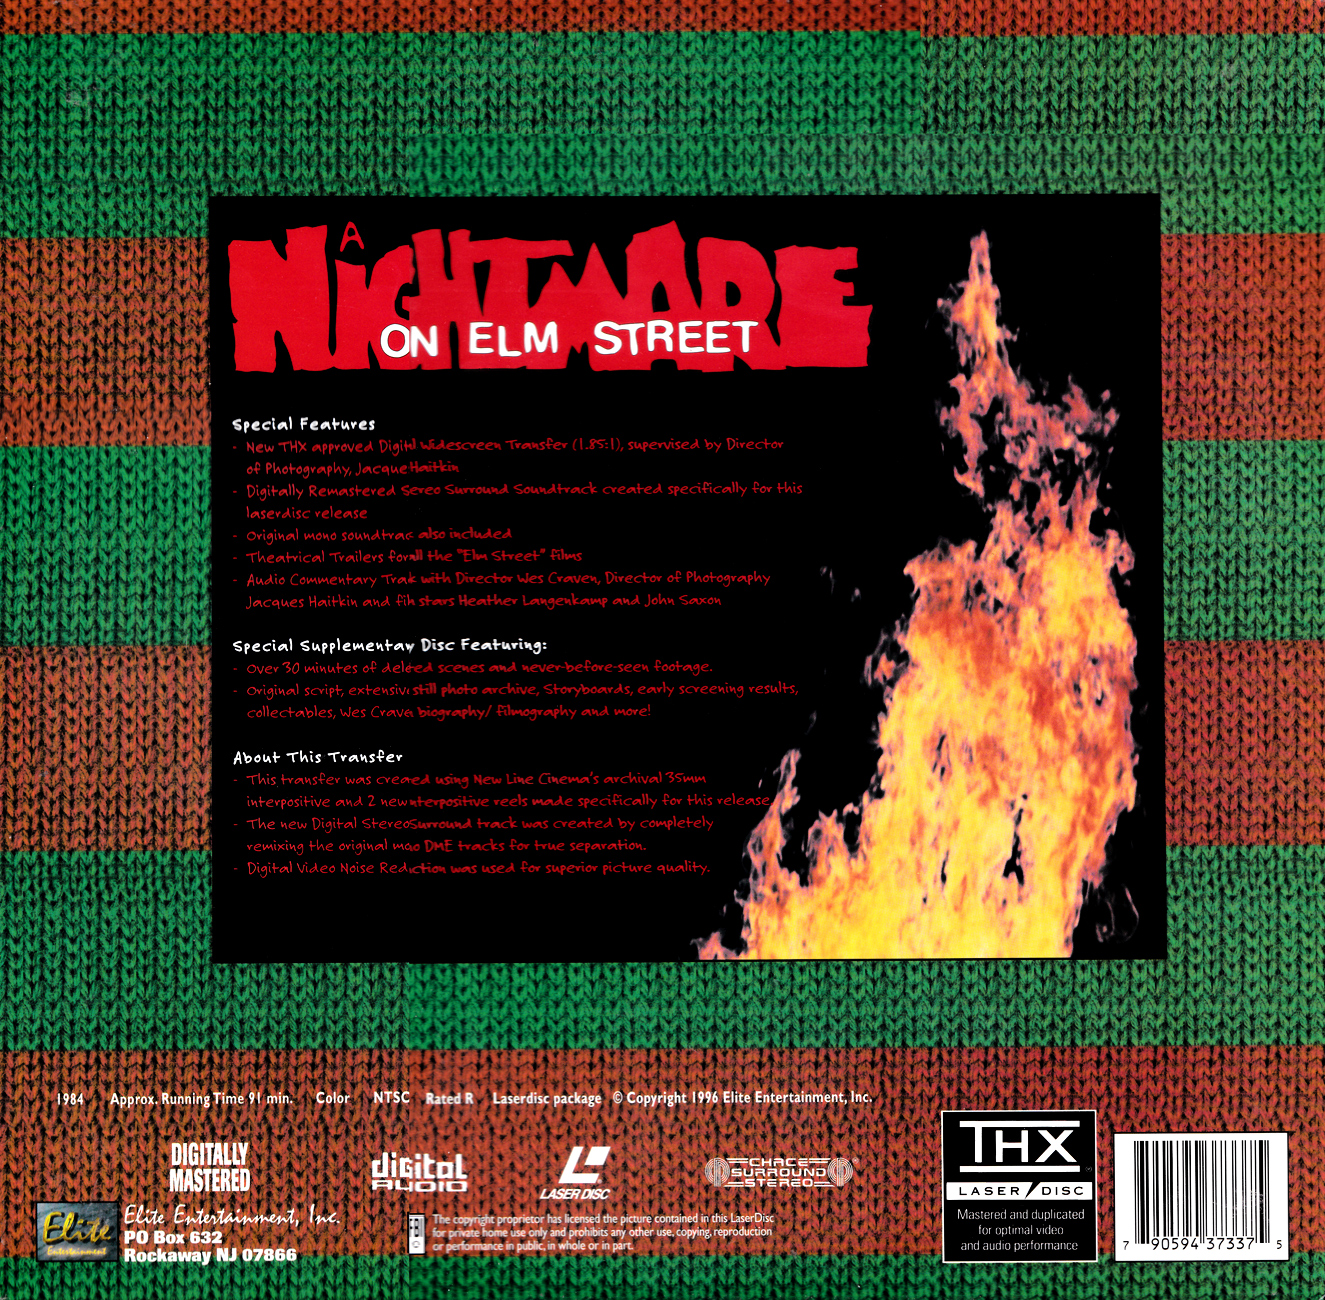 A Nightmare on Elm Street Special Collector's Edition Laserdisc